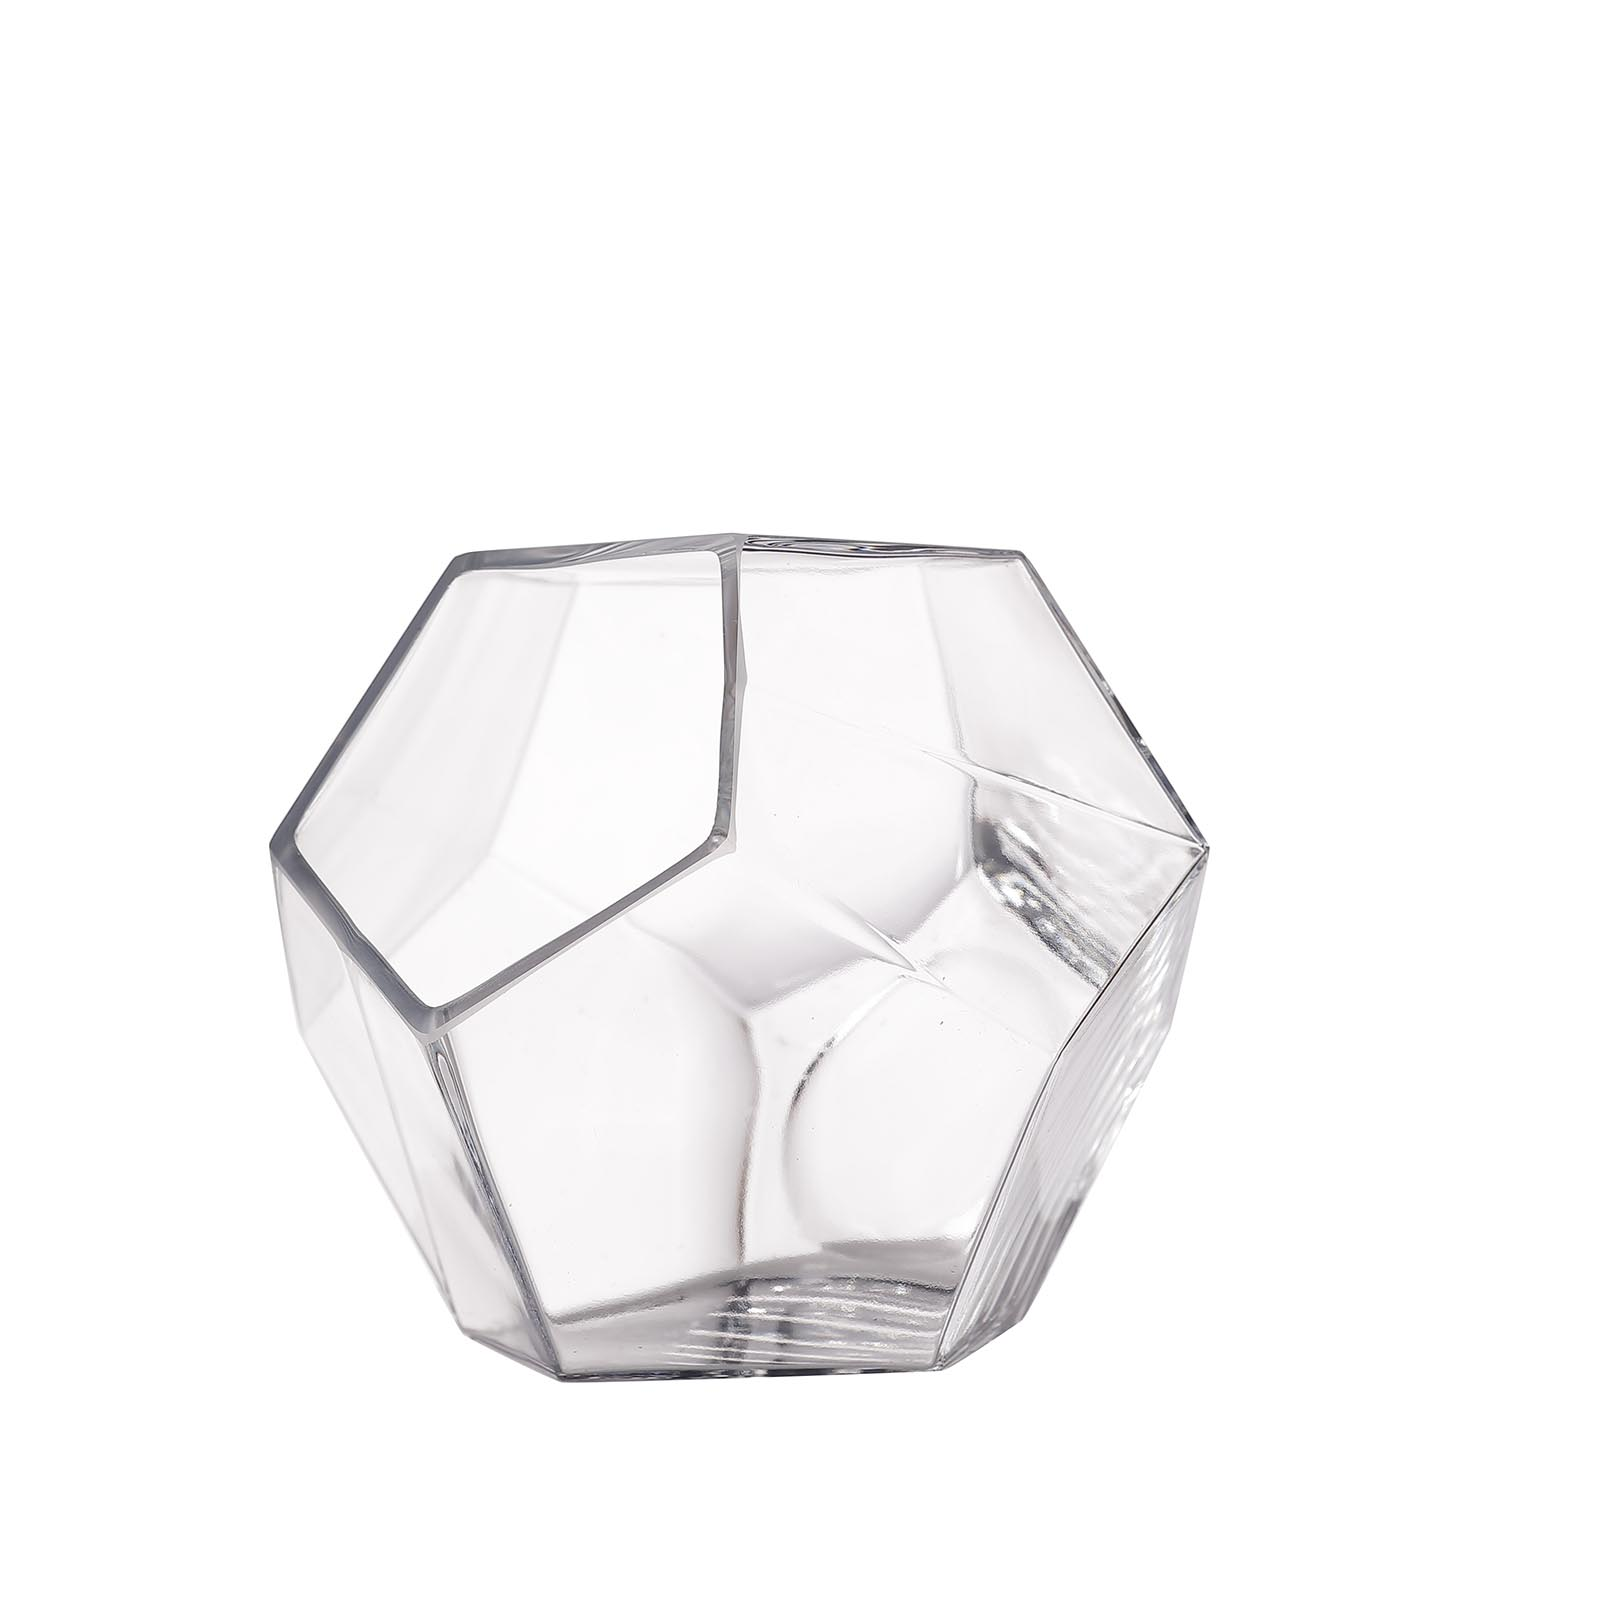 Clear 7 Glass Geometric Terrarium Centerpiece Vases Wedding Party Supplies Sale Ebay